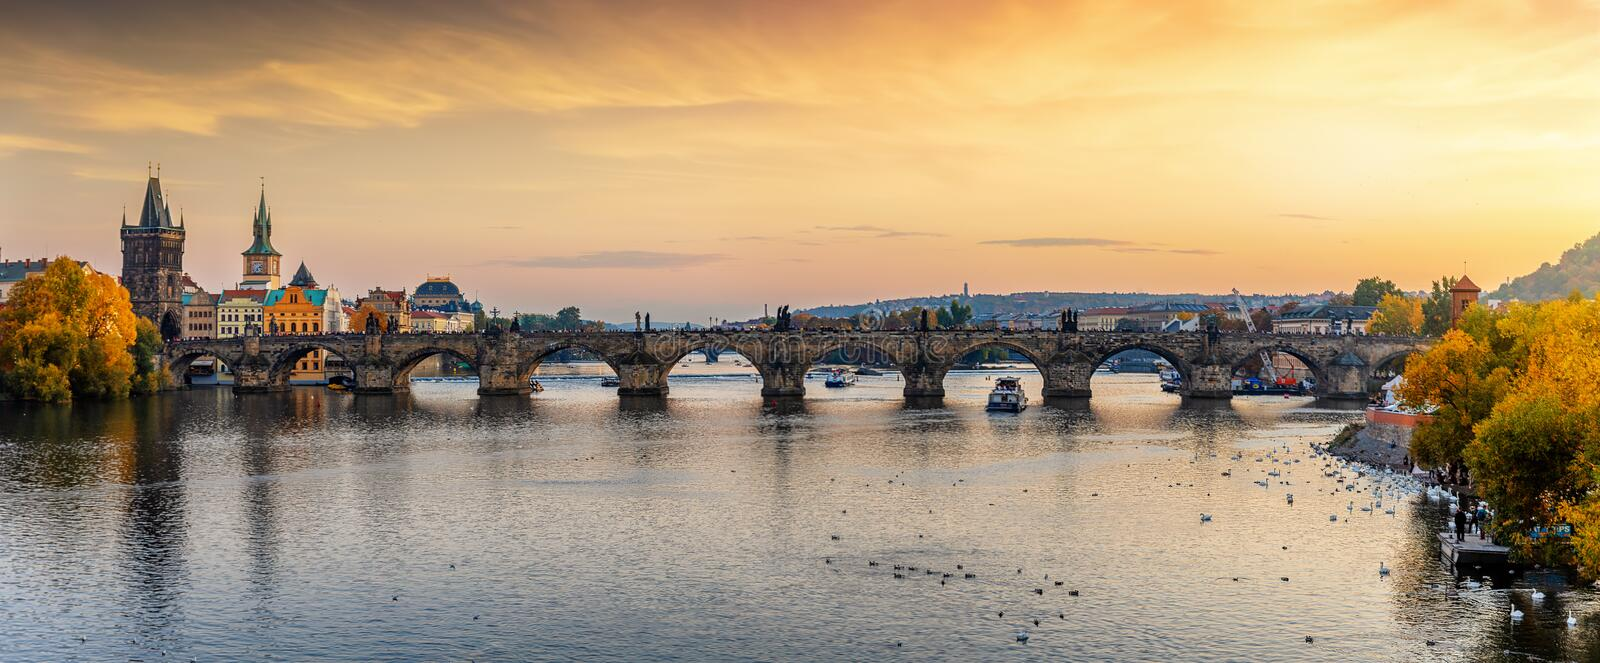 Panoramic view to the famous Charles Bridge over the river Vltava in Prague during sunset time royalty free stock photo